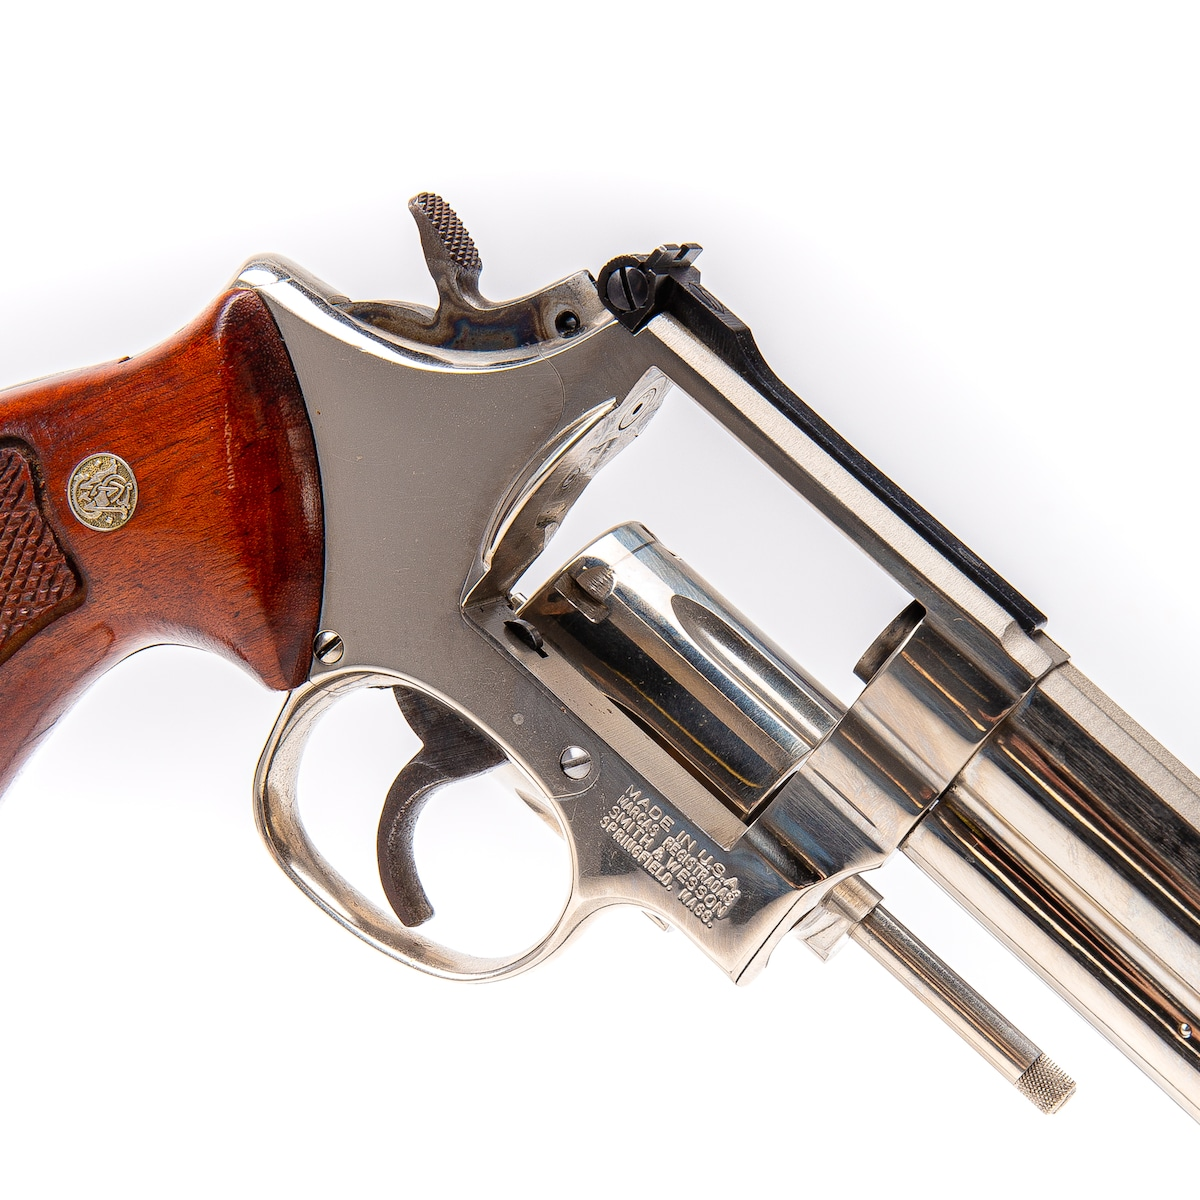 SMITH & WESSON MODEL 586-2